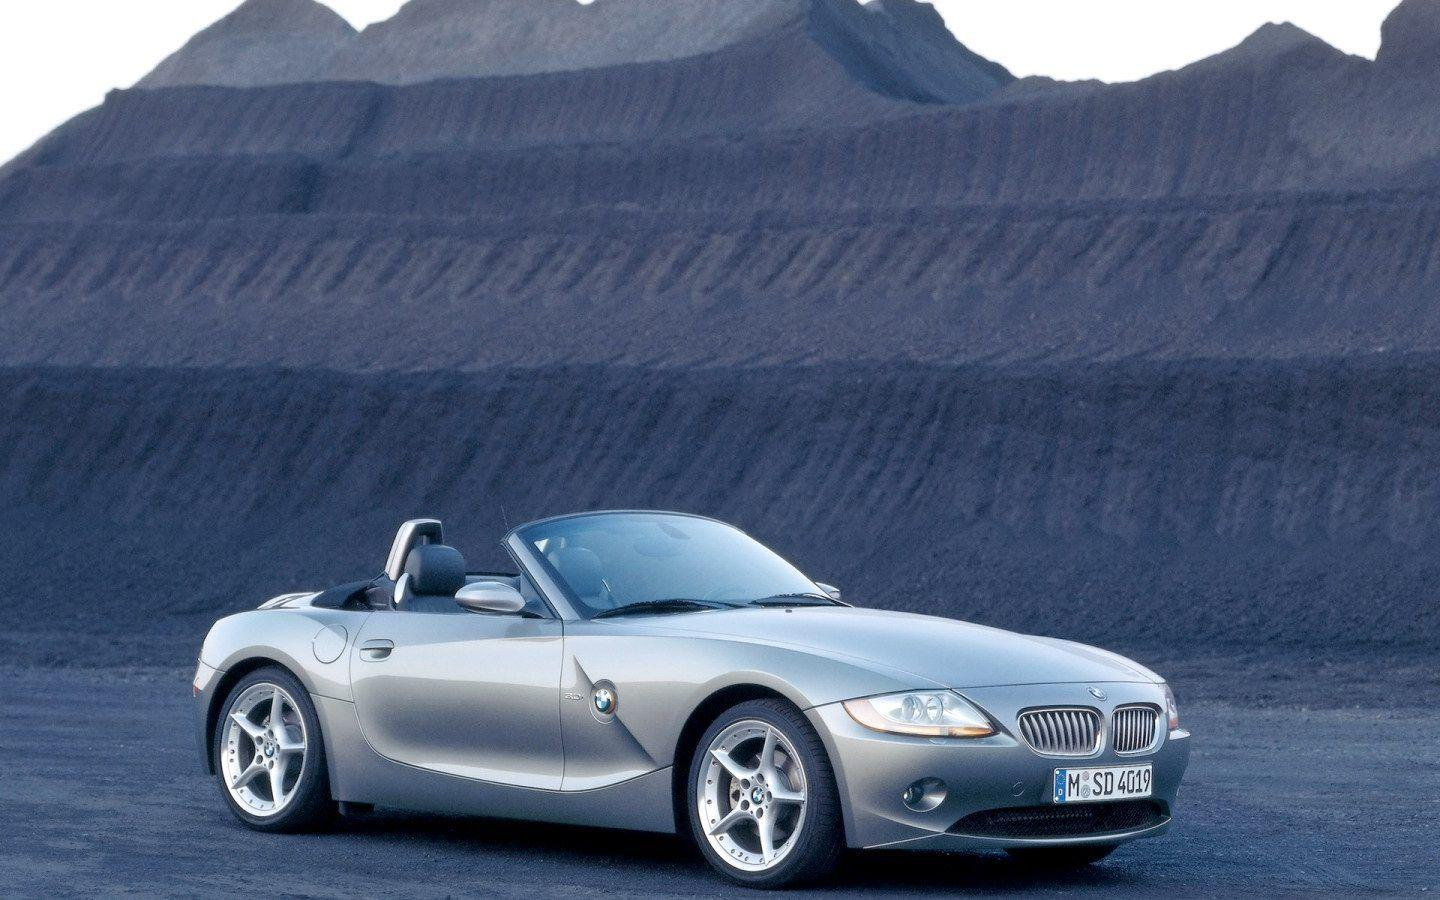 BMW Z4 Roadster Wallpaper 02 - 1440x900